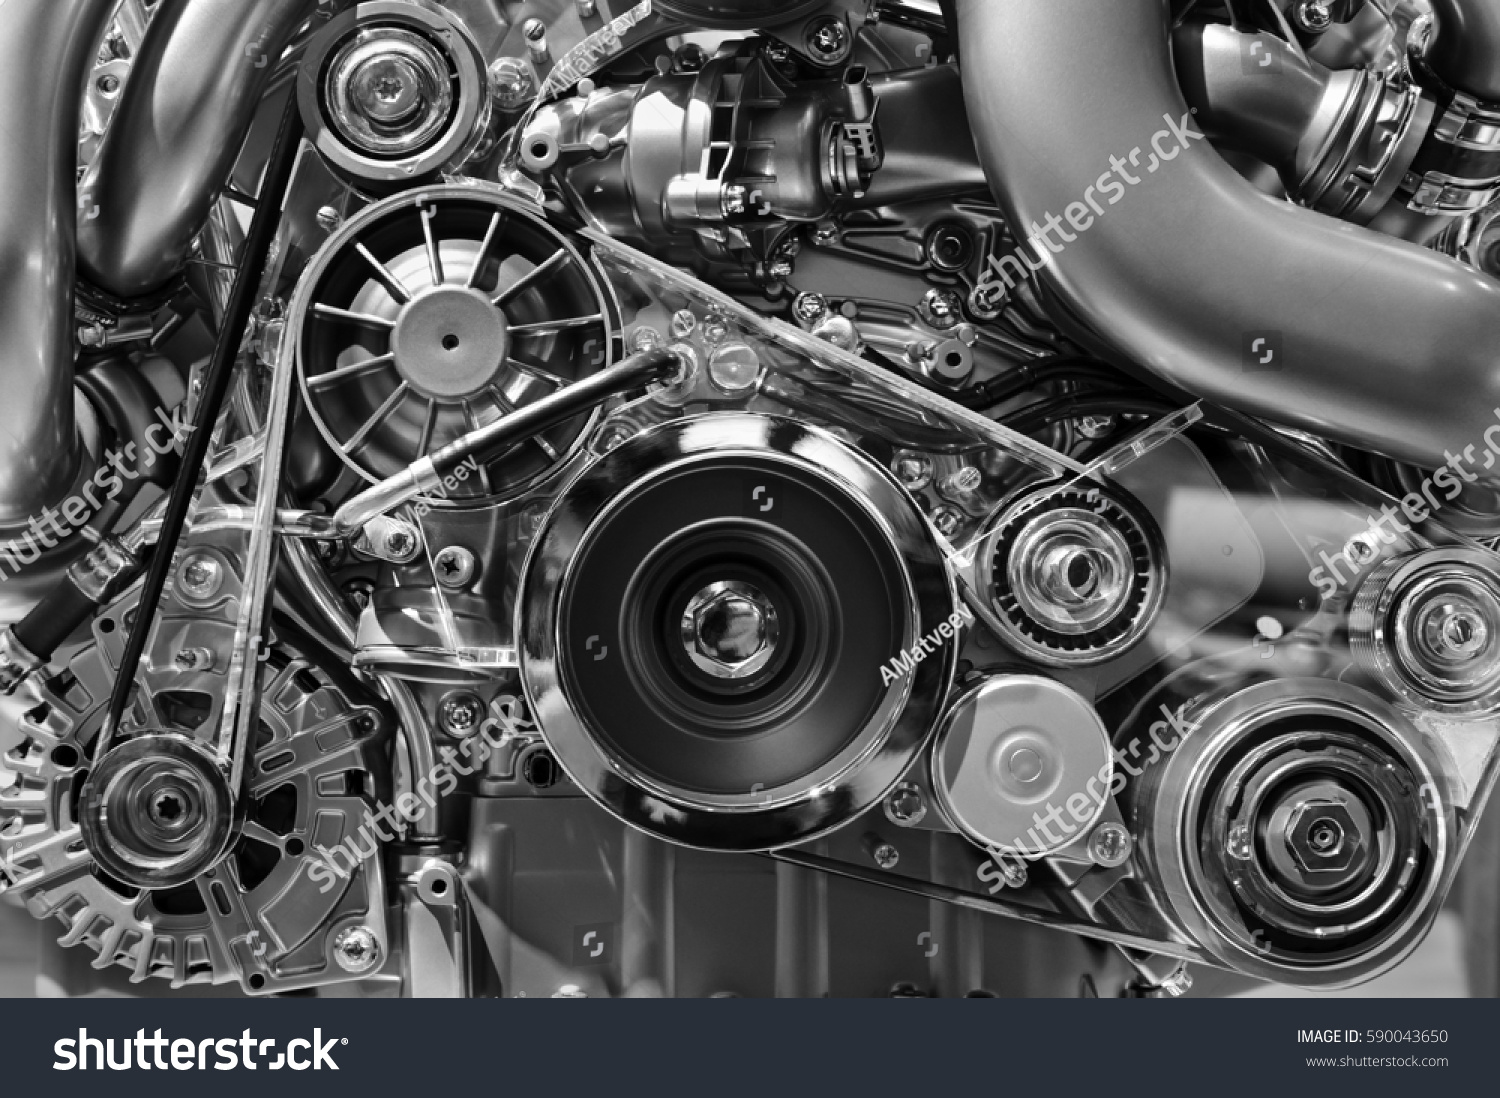 Car Engine Concept Modern Vehicle Motor Stock Photo (Edit Now ...